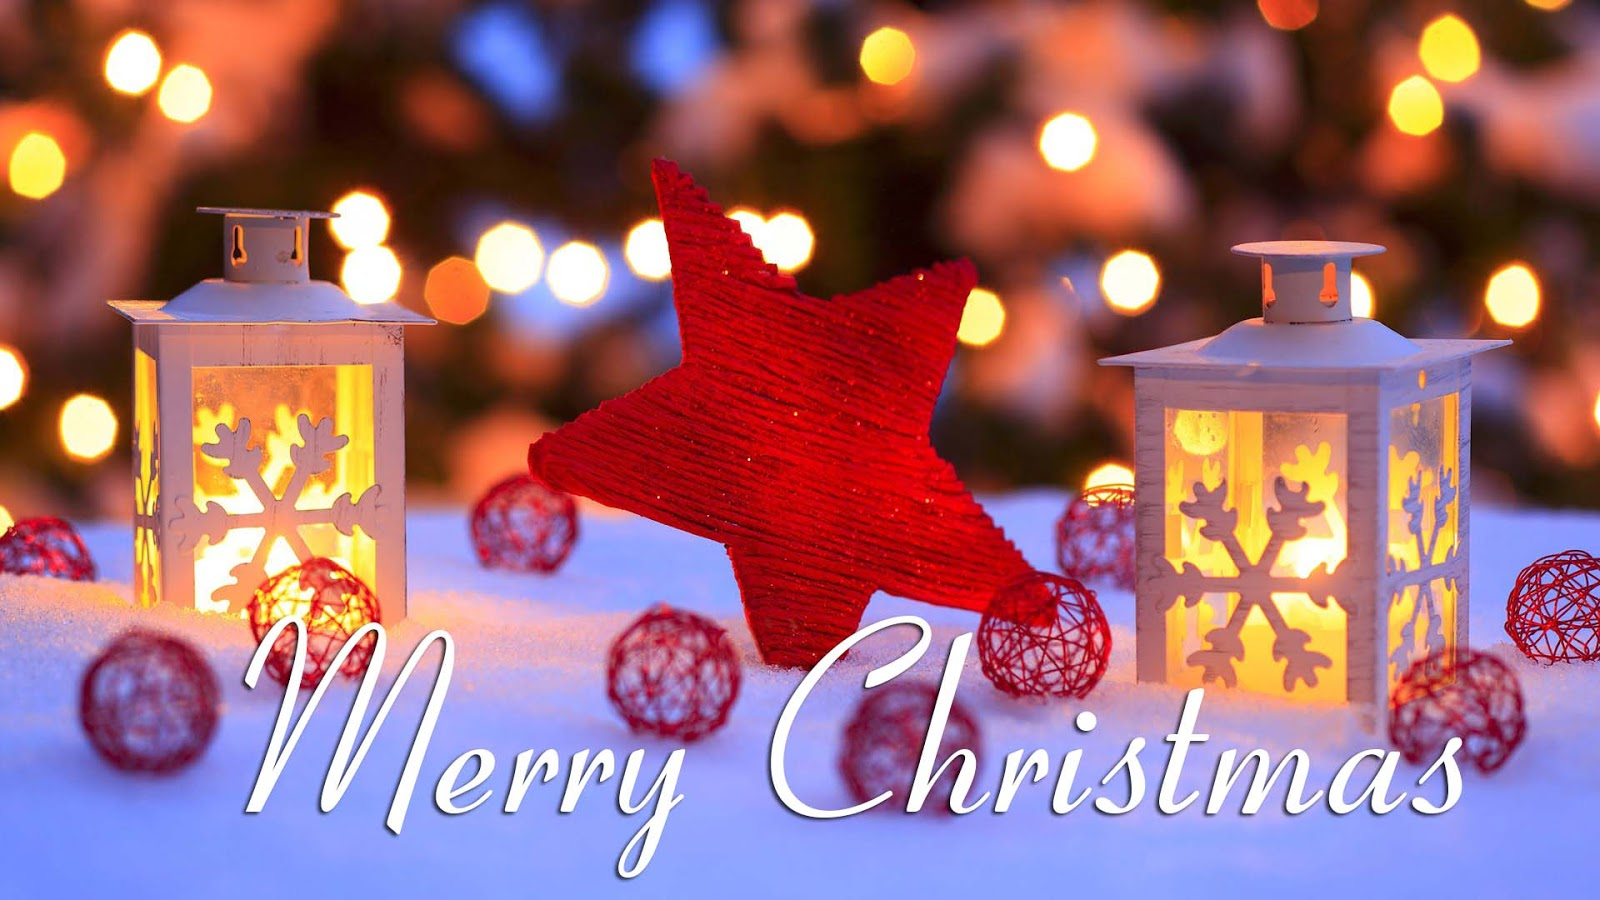 Download Happy Christmas Images* 20+ FULL HD Wallpapers And Merry